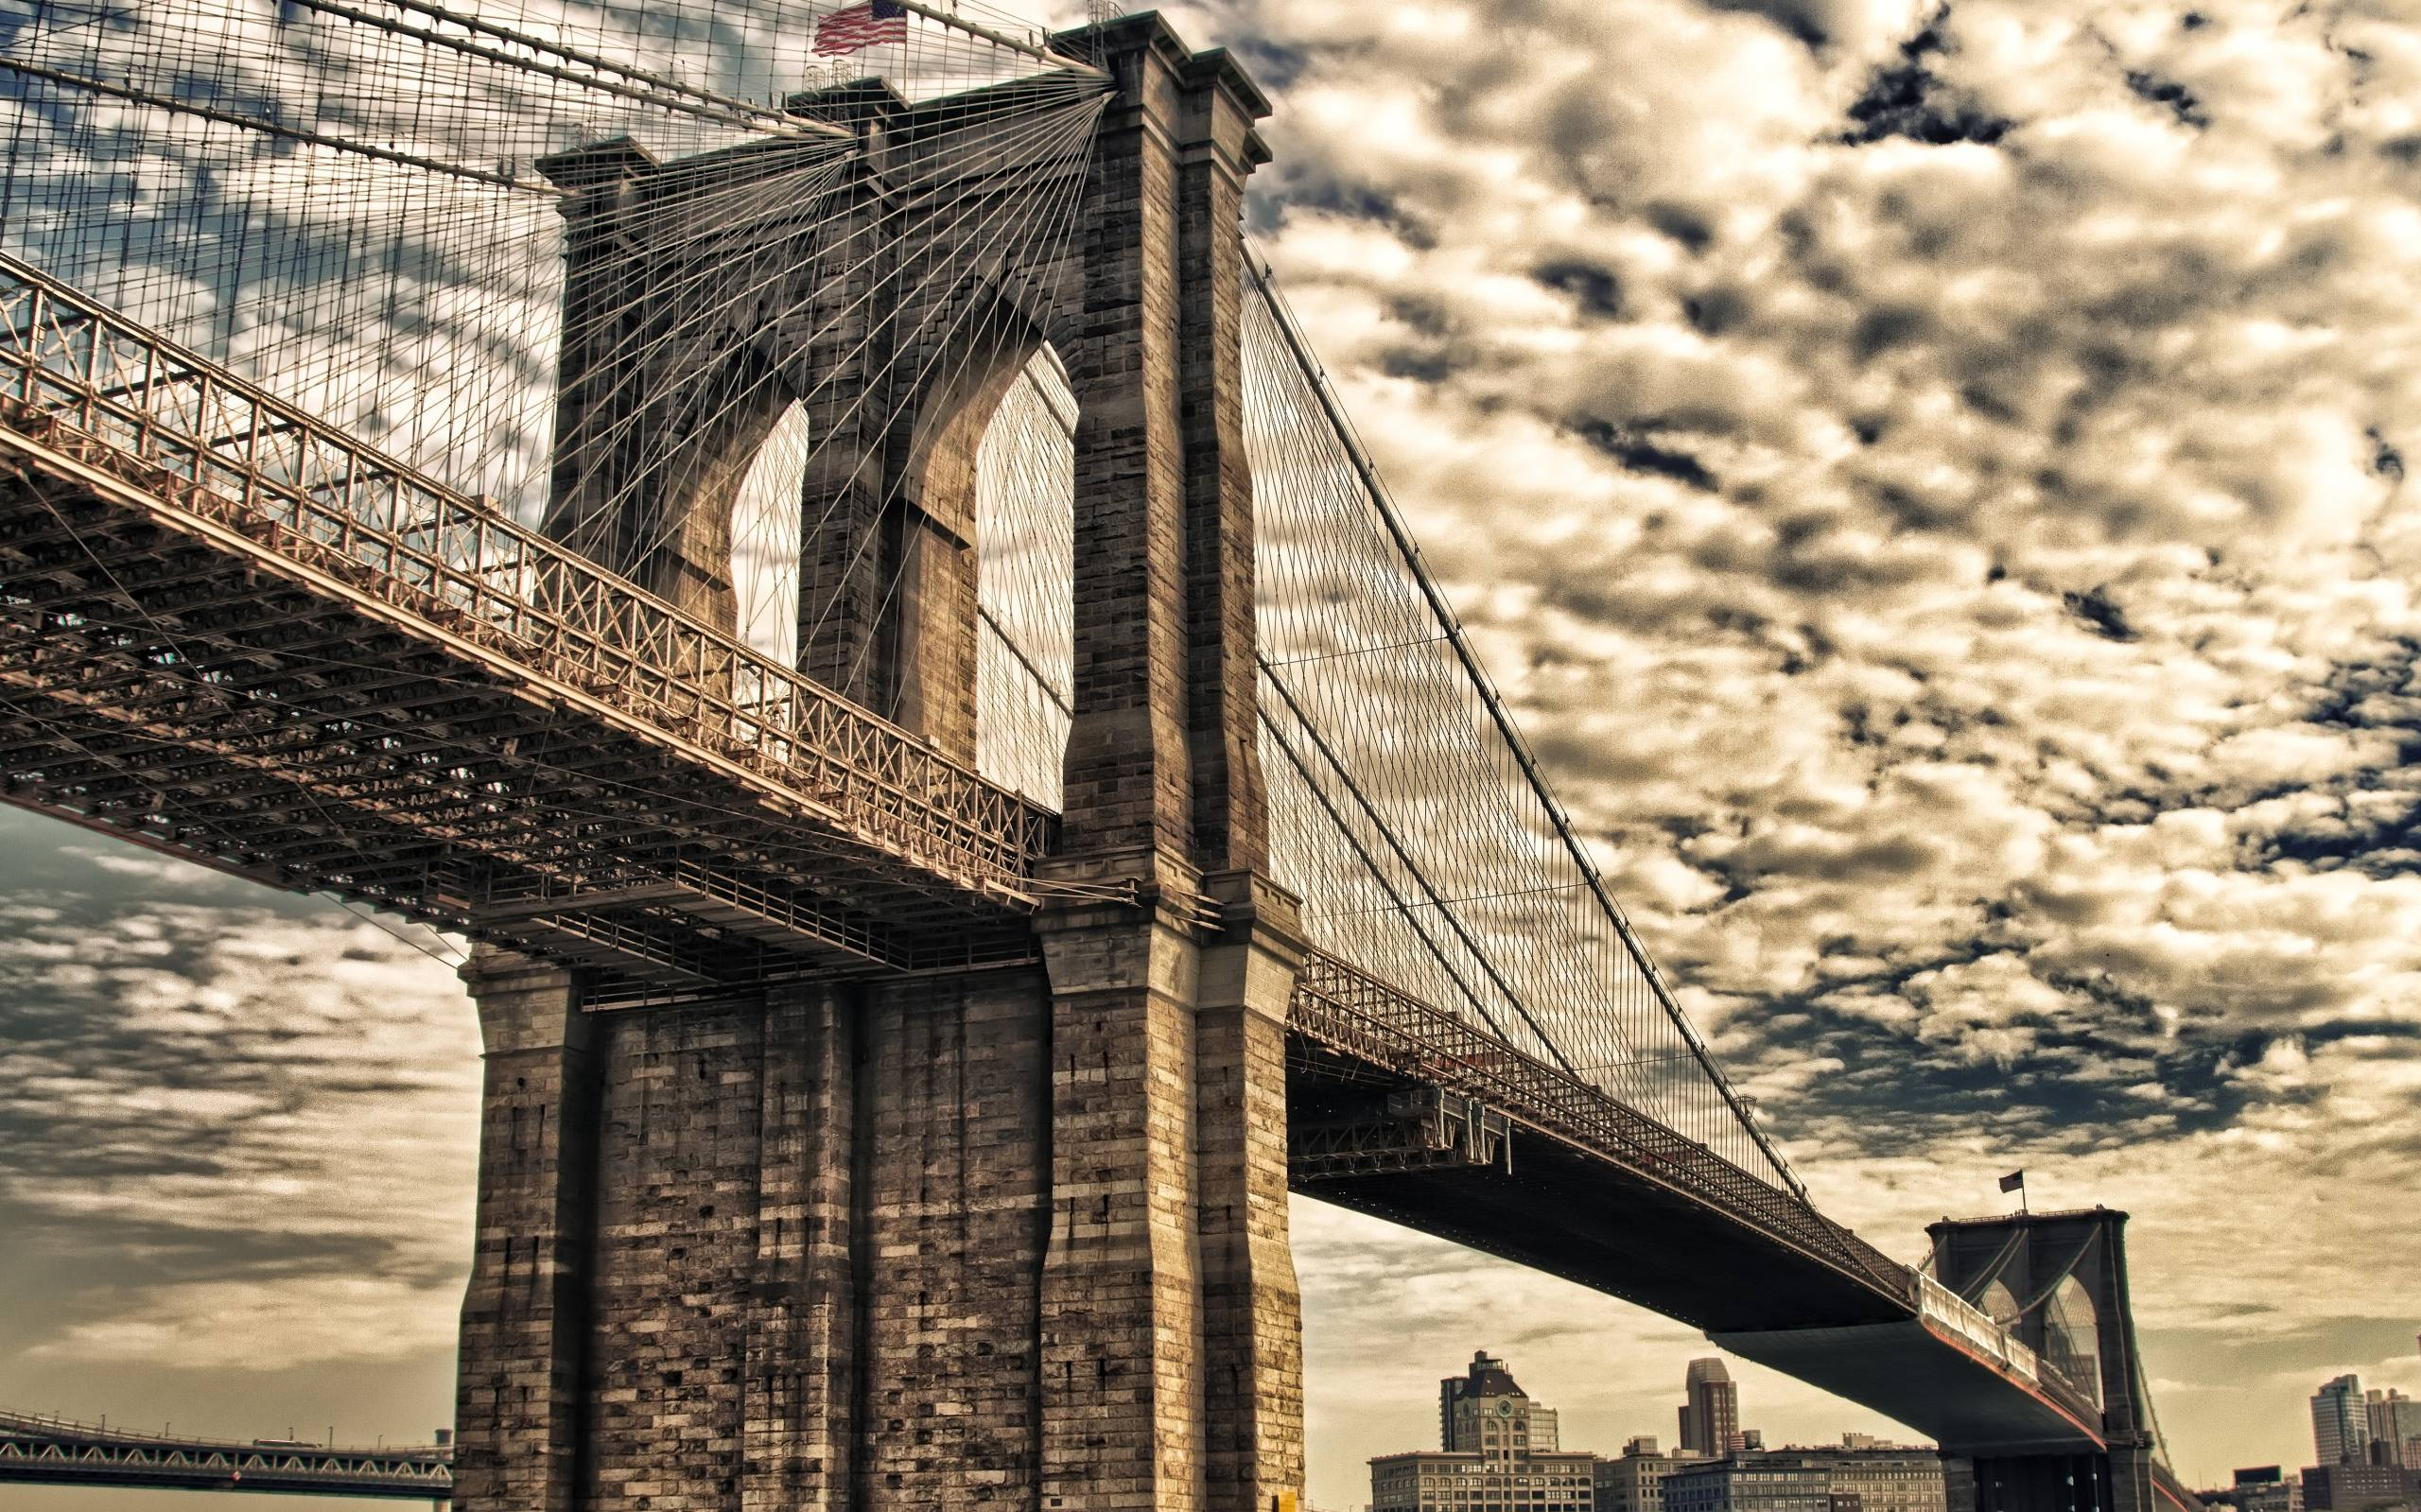 Brooklyn Bridge, New York City widescreen wallpapers